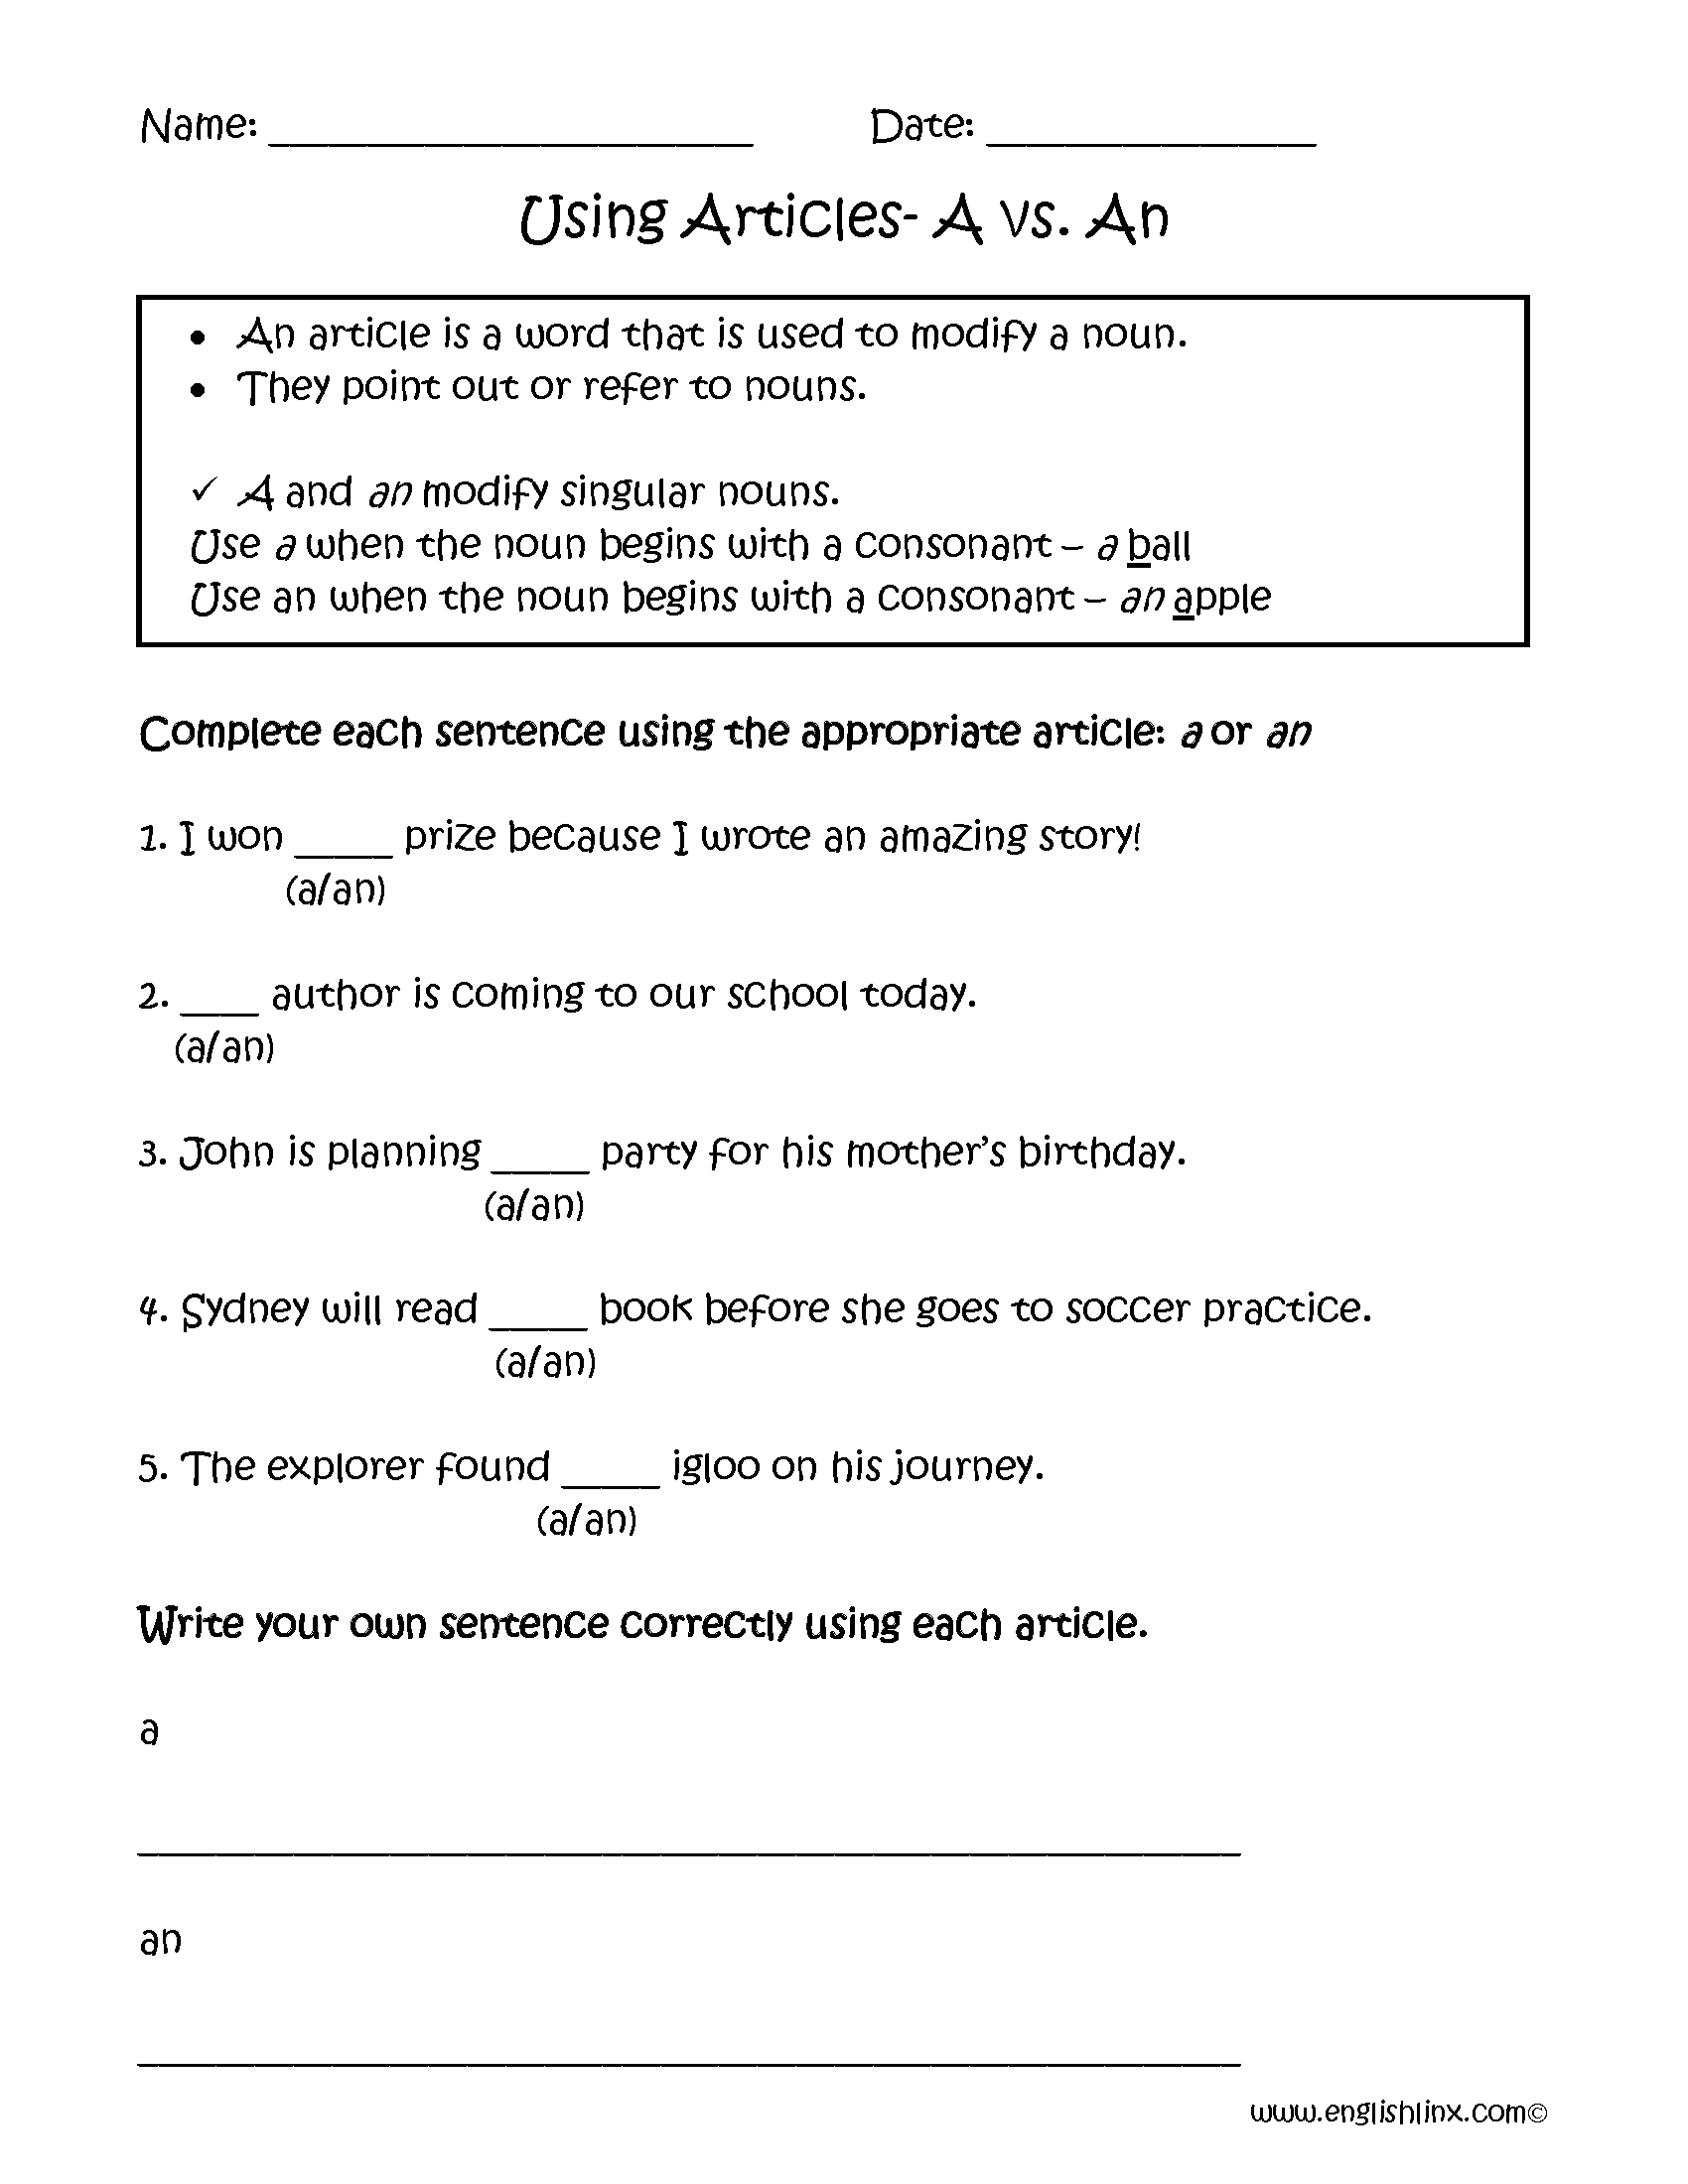 A vs. An Articles Worksheets